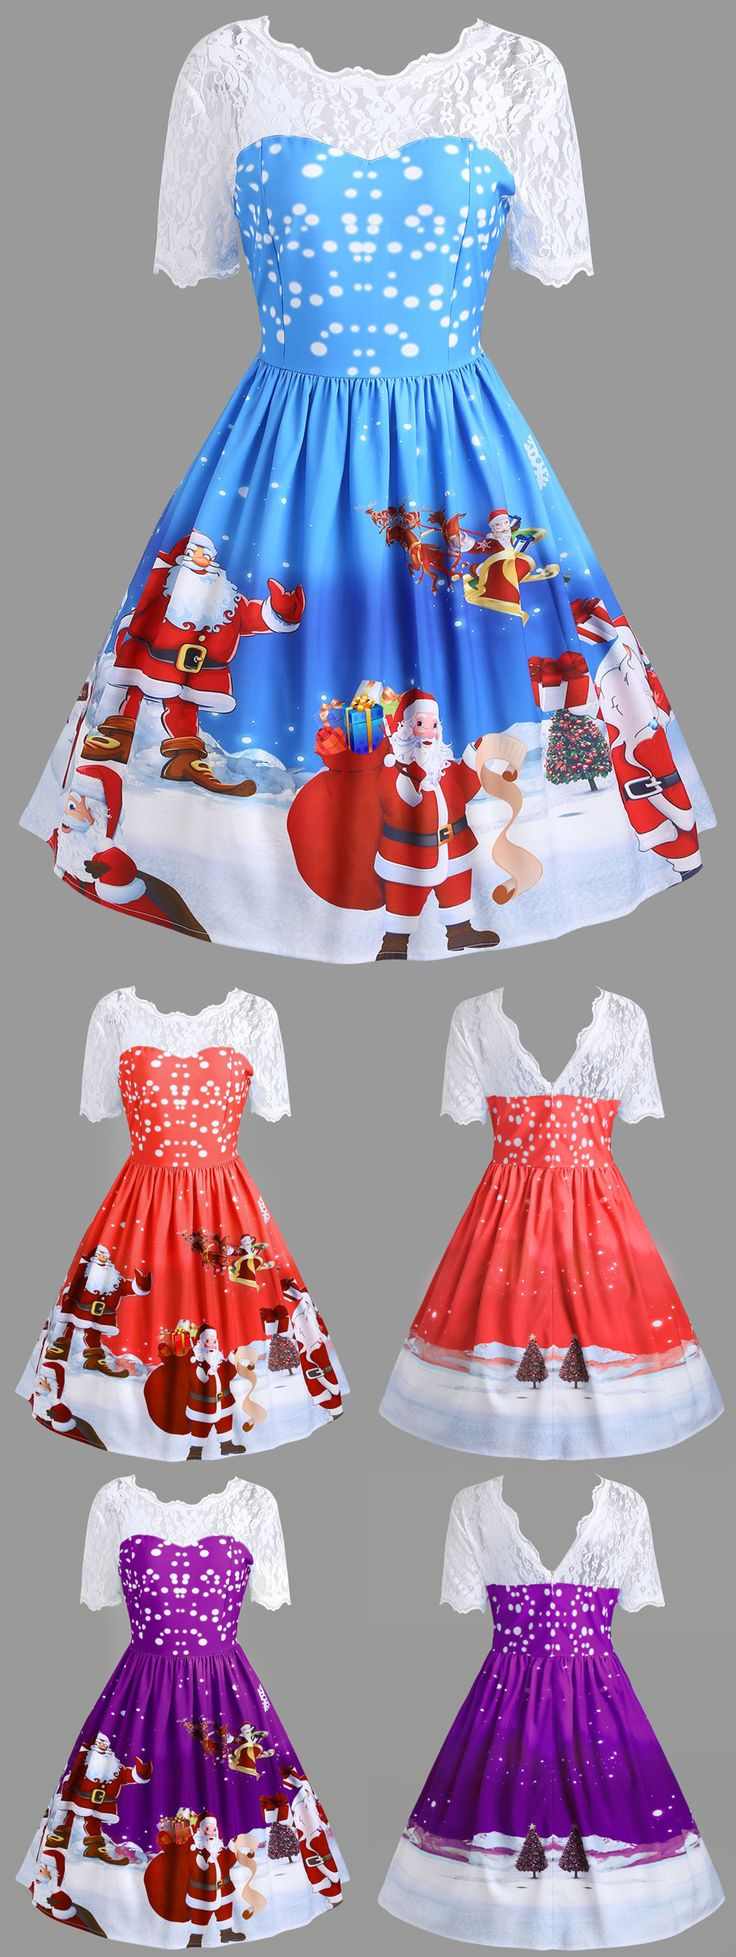 #MerryChristmas $13.44 | Vintage Christmas Santa Claus Print Lace Insert Dress | Sammydress.com